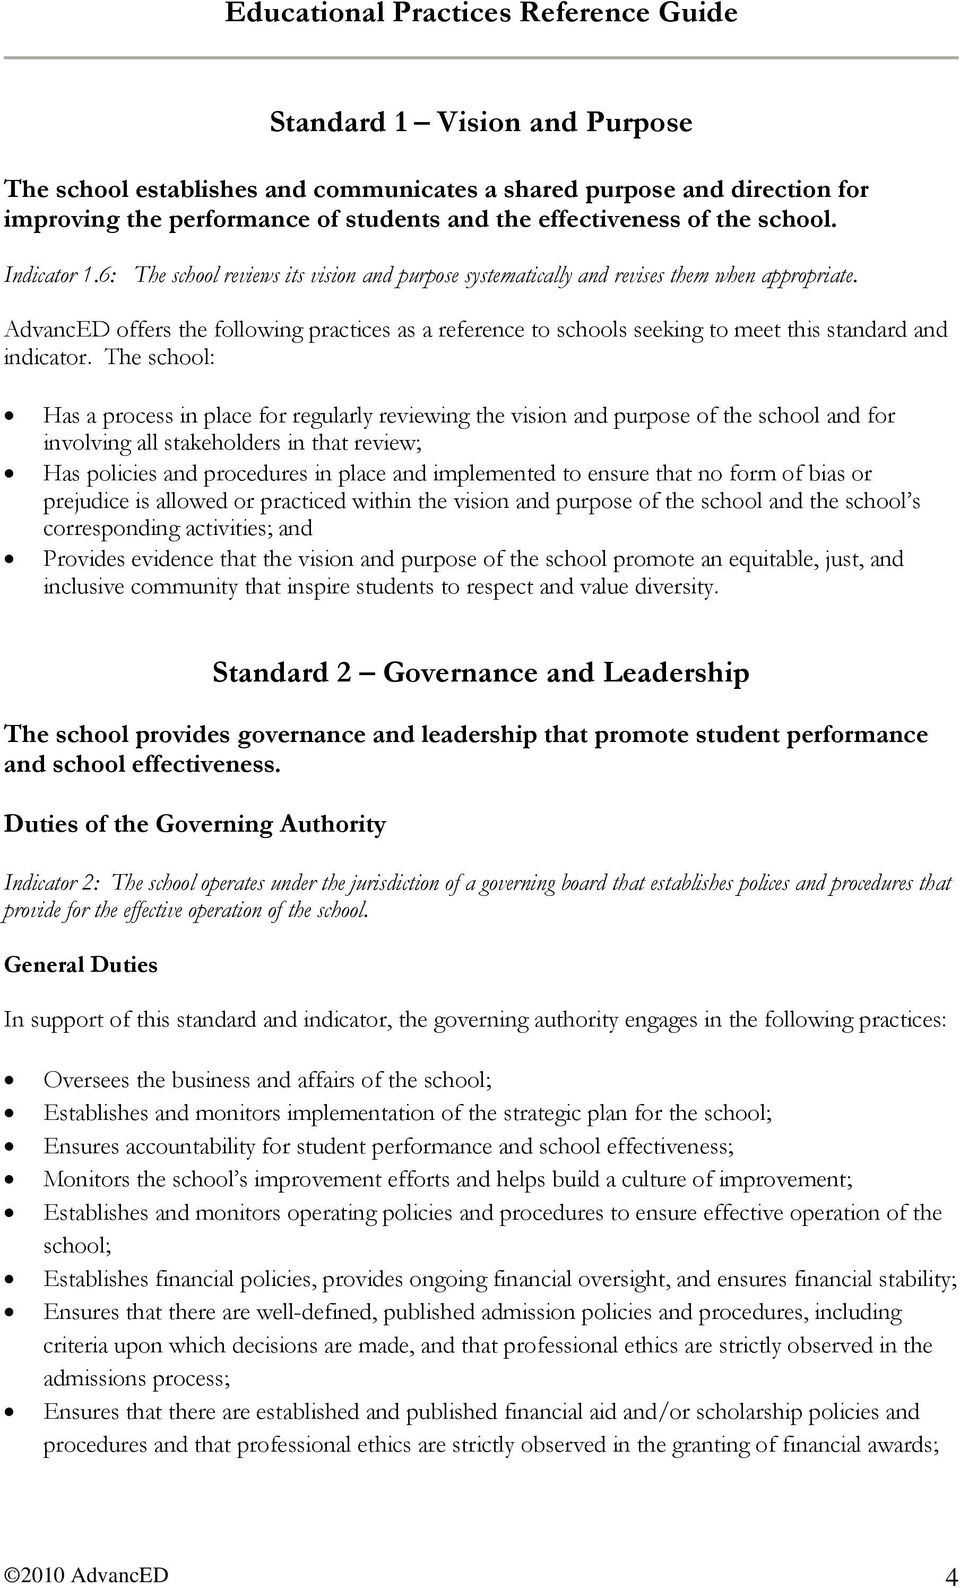 AdvancED offers the following practices as a reference to schools seeking to meet this standard and indicator.